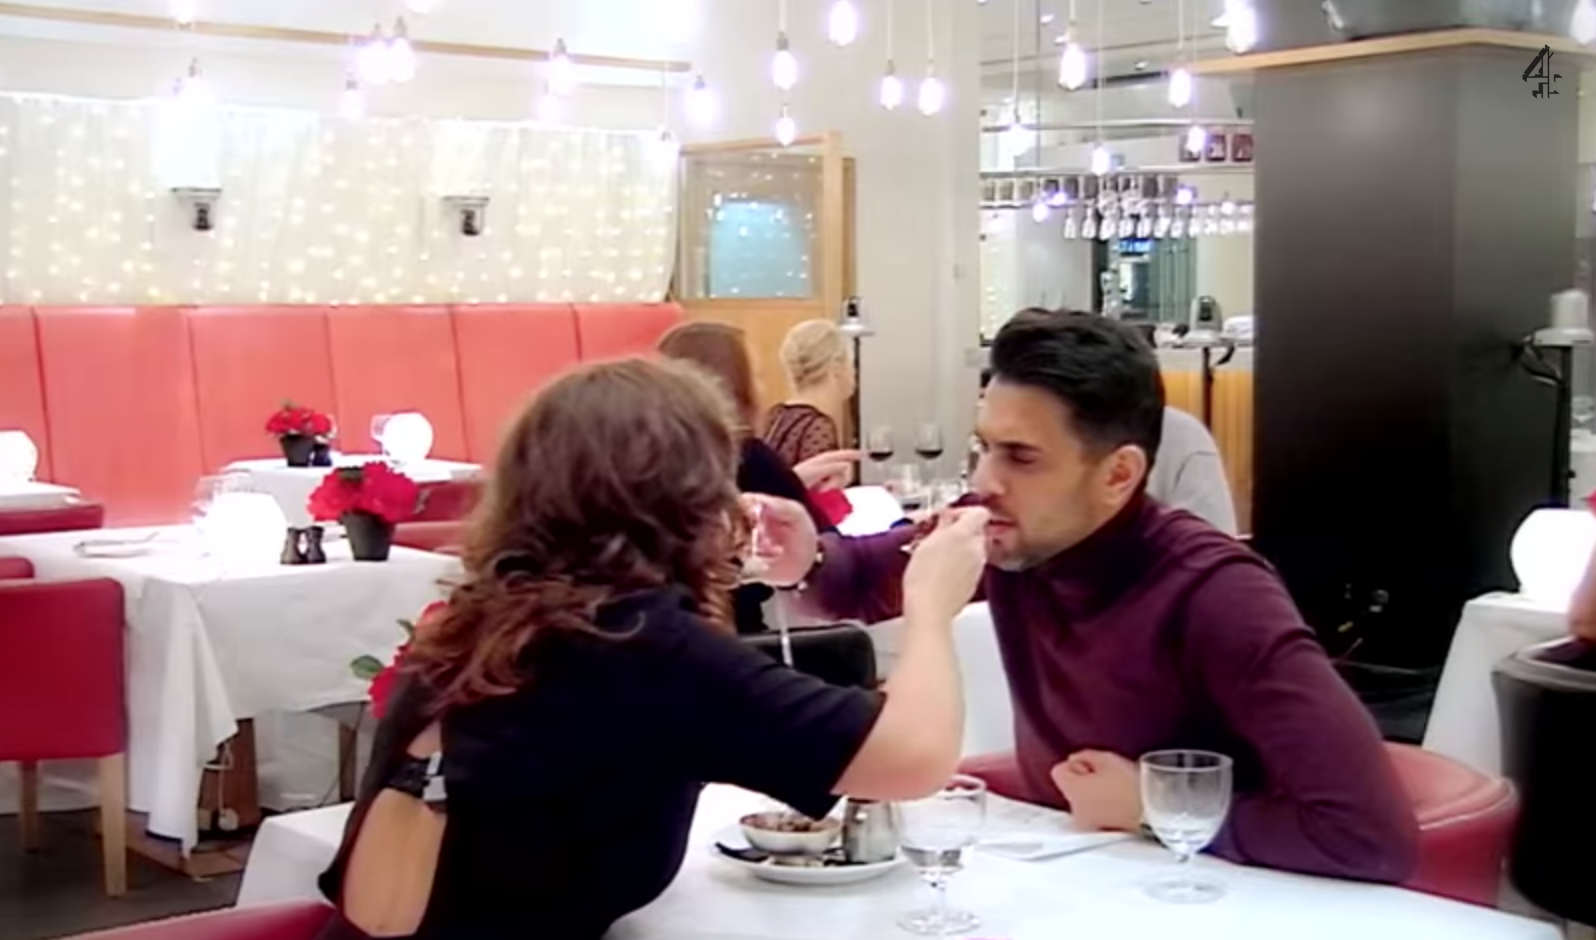 First Dates - All 4